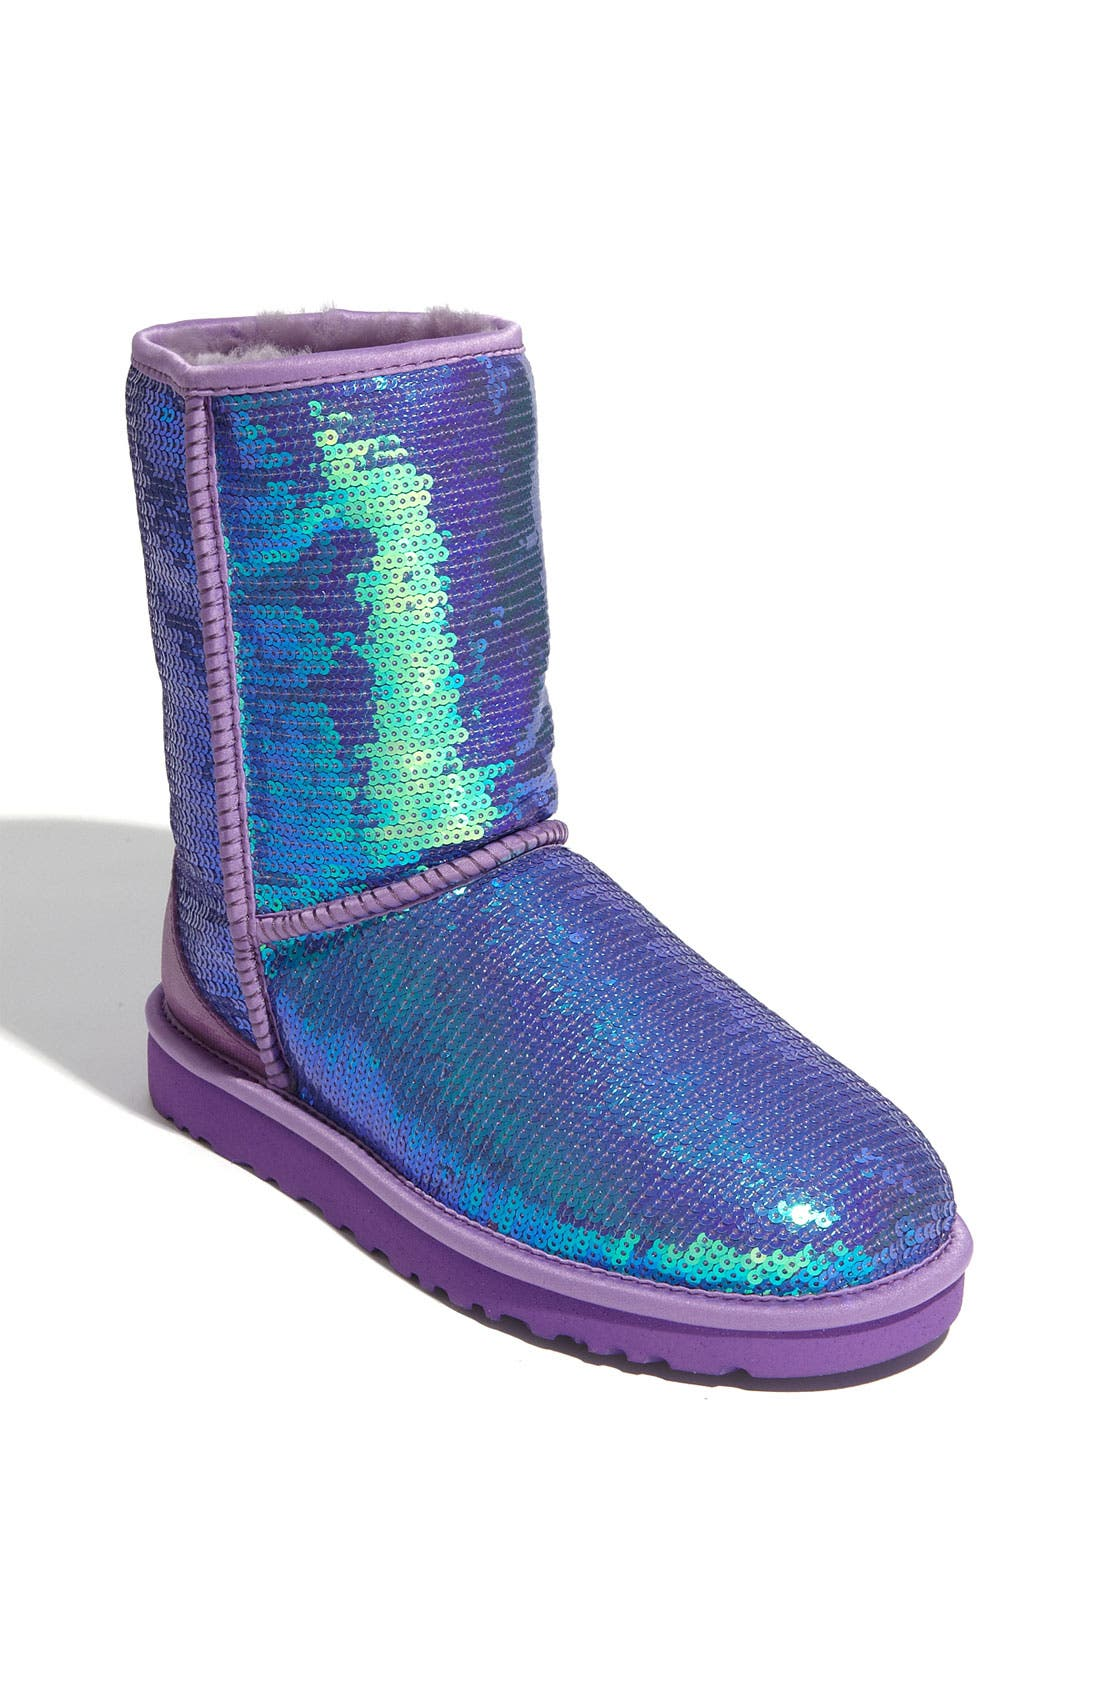 Main Image - UGG® Classic Short with Sparkles Boot